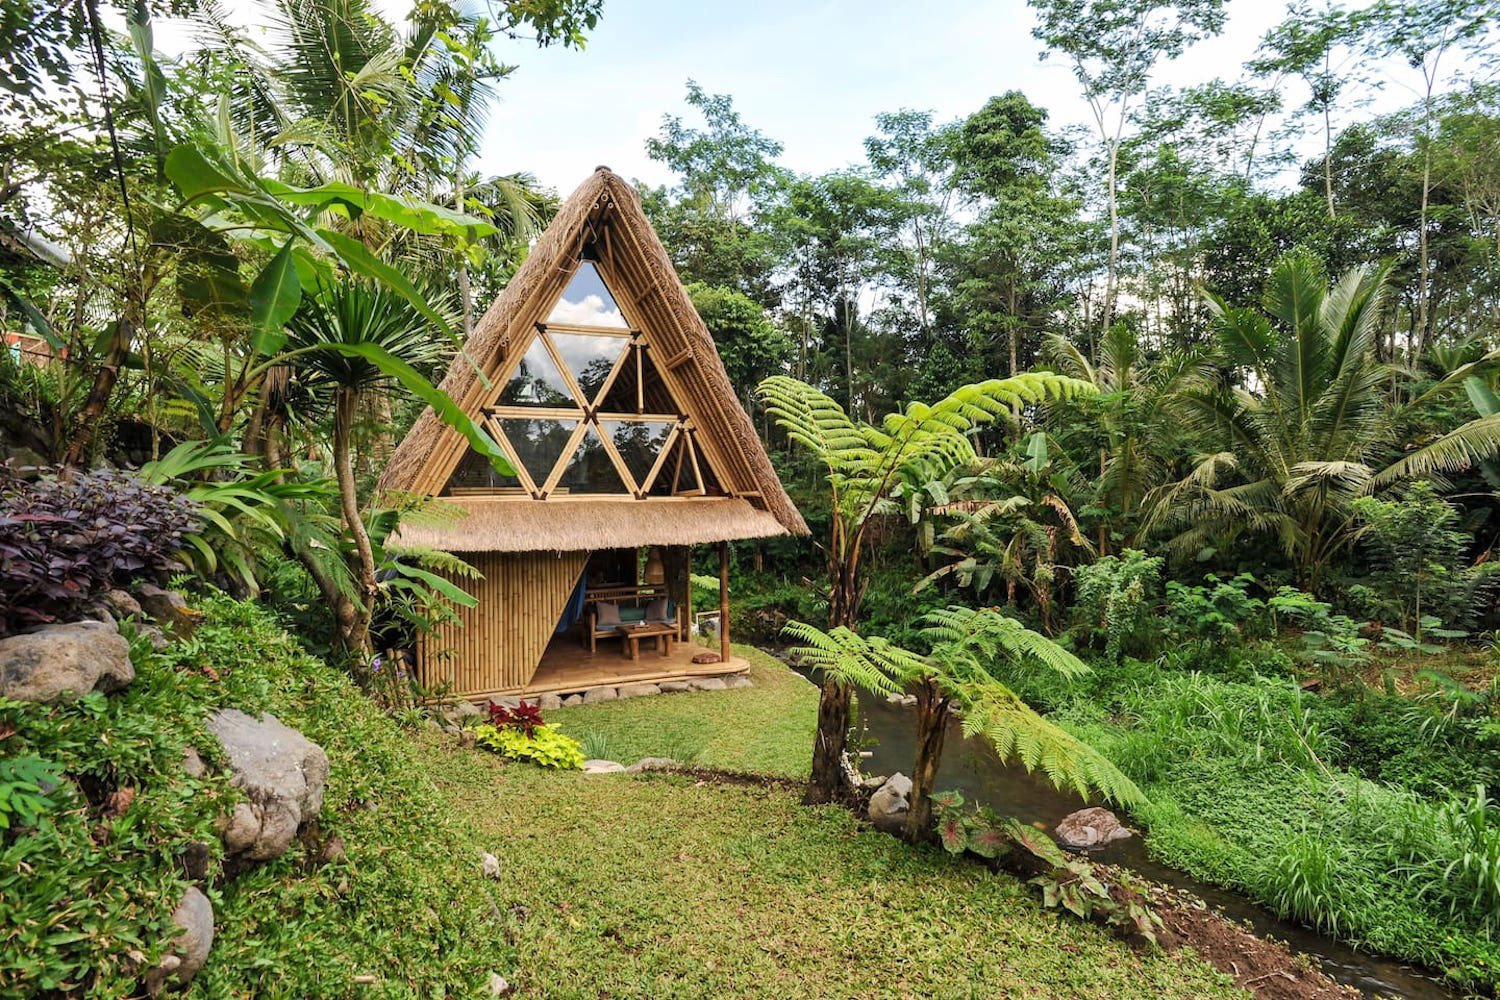 This Serene Bamboo Bungalow Rental Is a Slice of Paradise in Bali